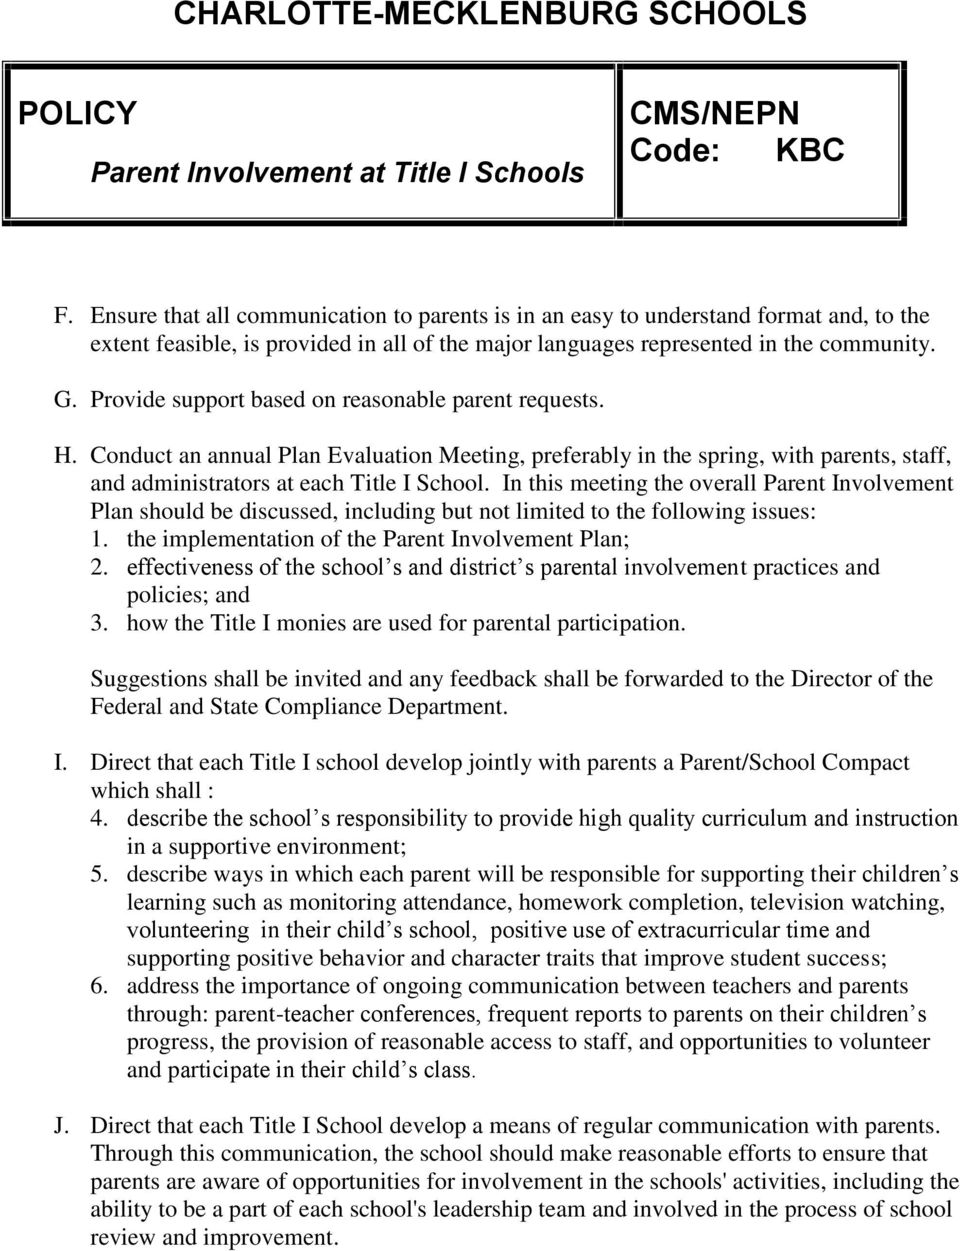 Provide support based on reasonable parent requests. H. Conduct an annual Plan Evaluation Meeting, preferably in the spring, with parents, staff, and administrators at each Title I School.